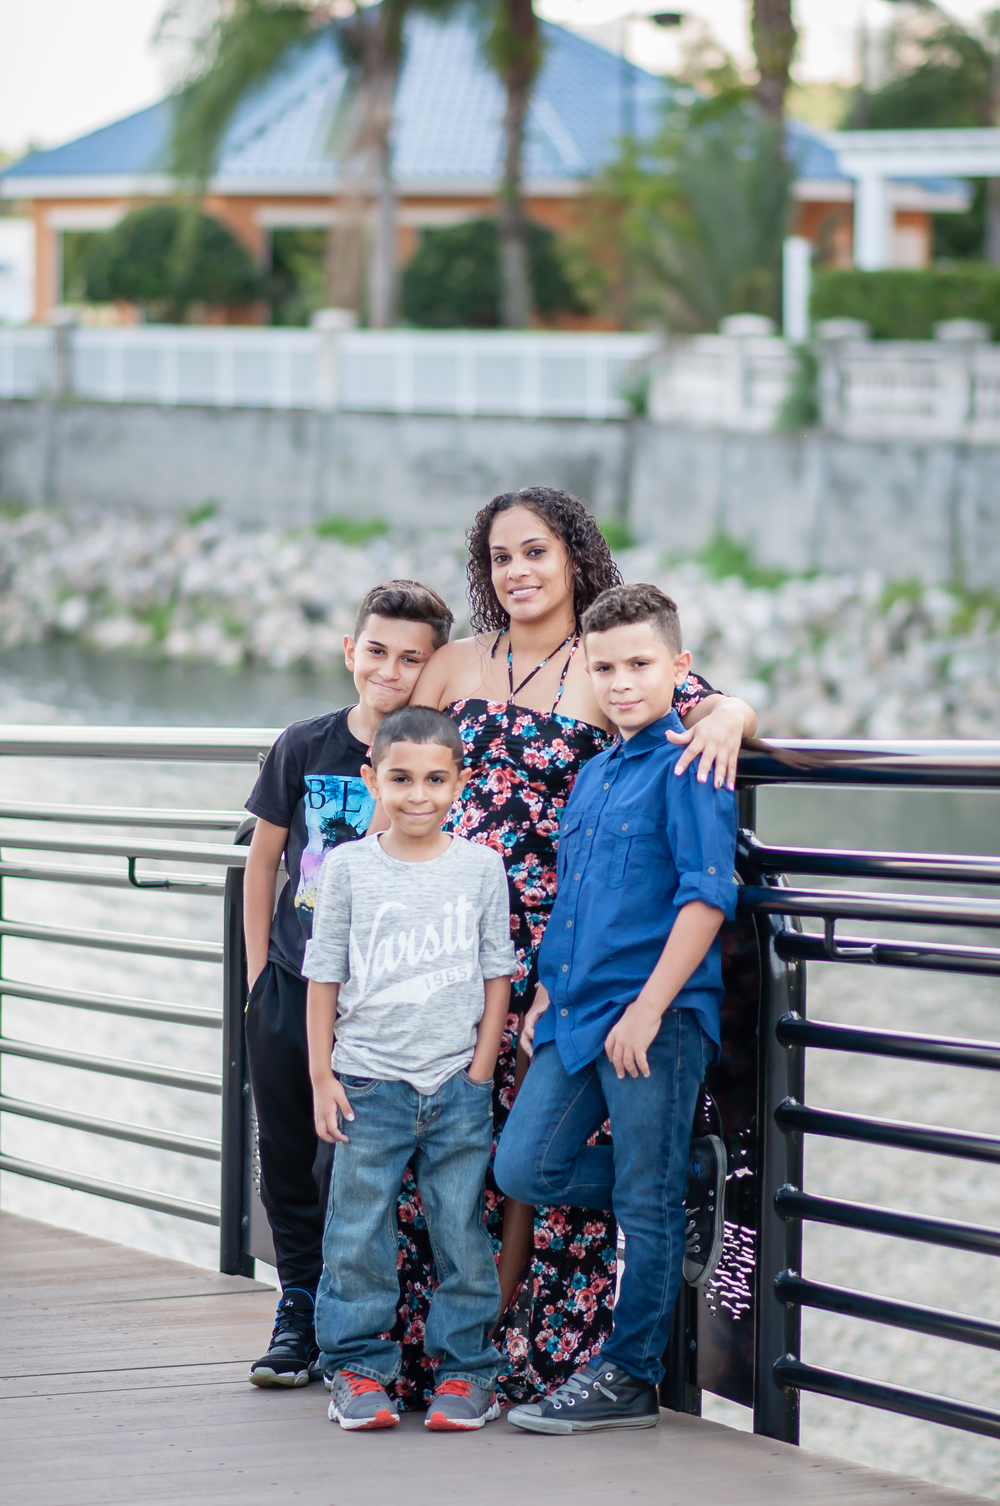 cranes roost park family session